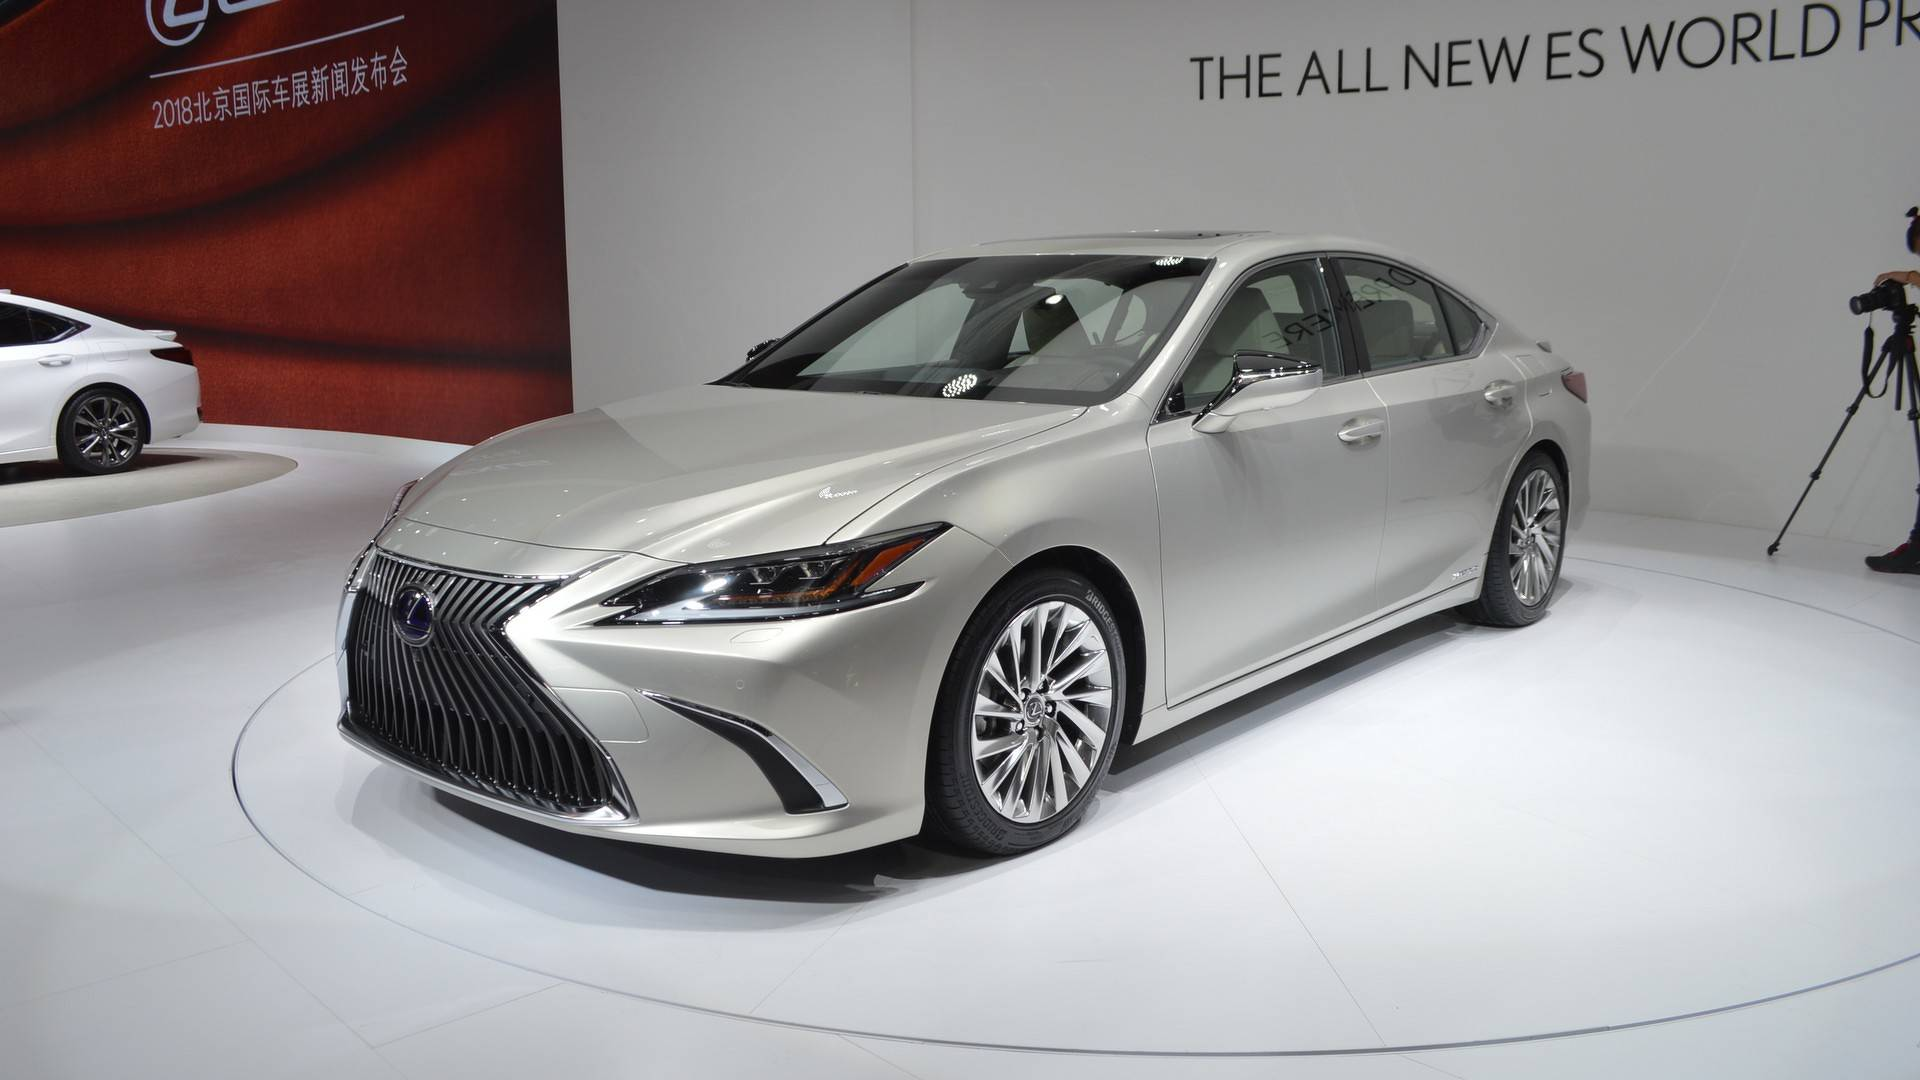 The 7th instalment in the Lexus ES series comes out later this year